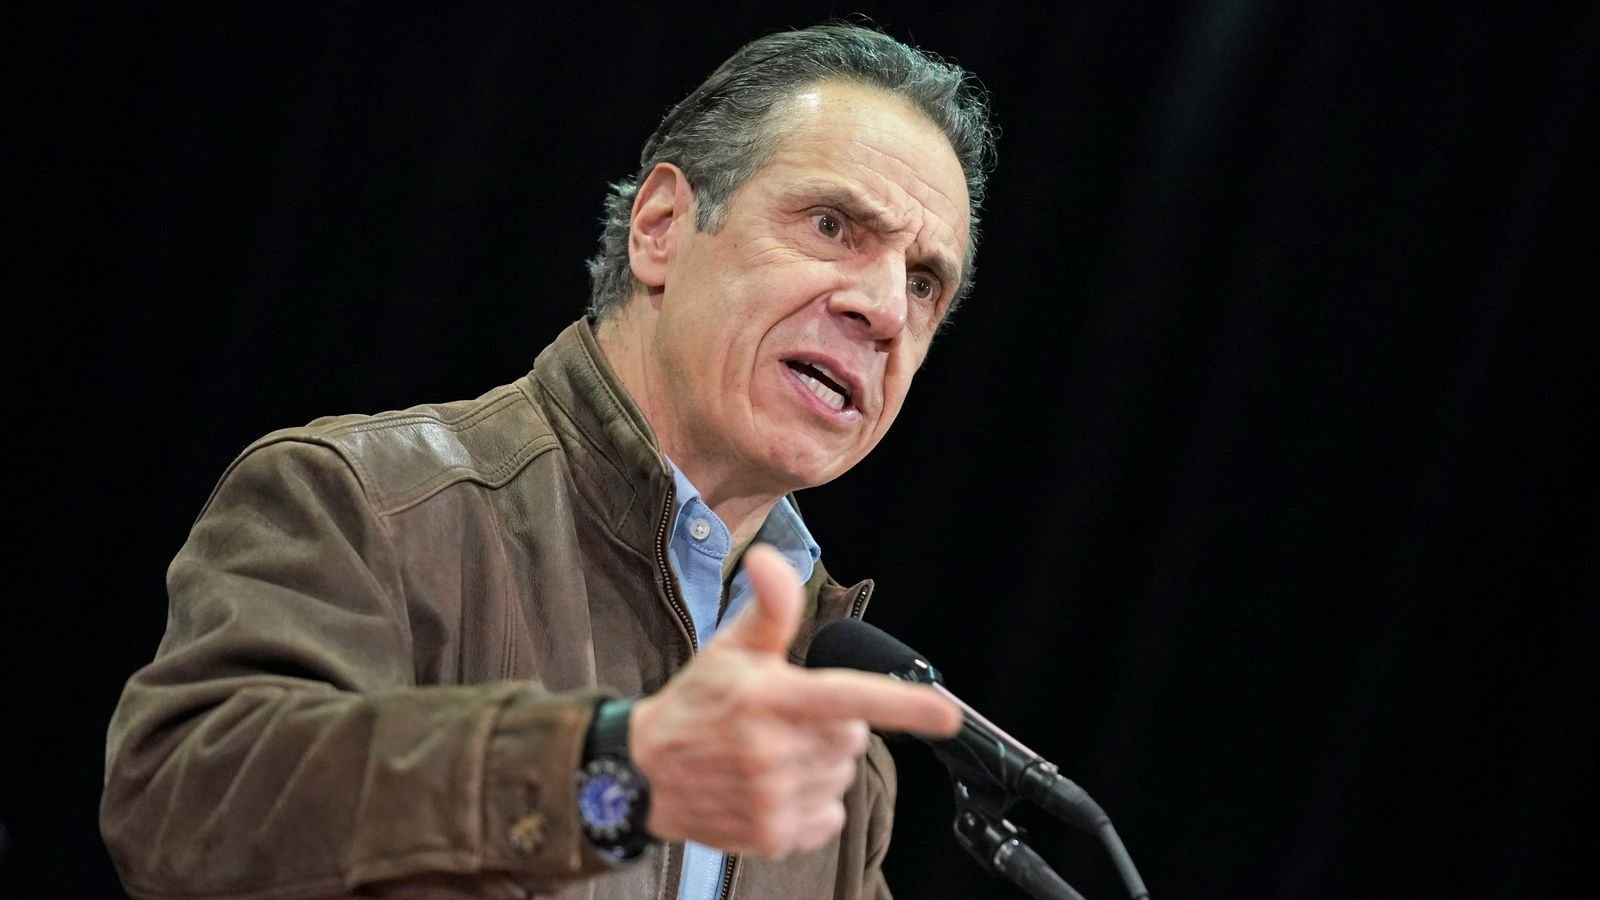 Andrew Cuomo: New York governor admits he could have been 'too private' as sexual harassment probe launched